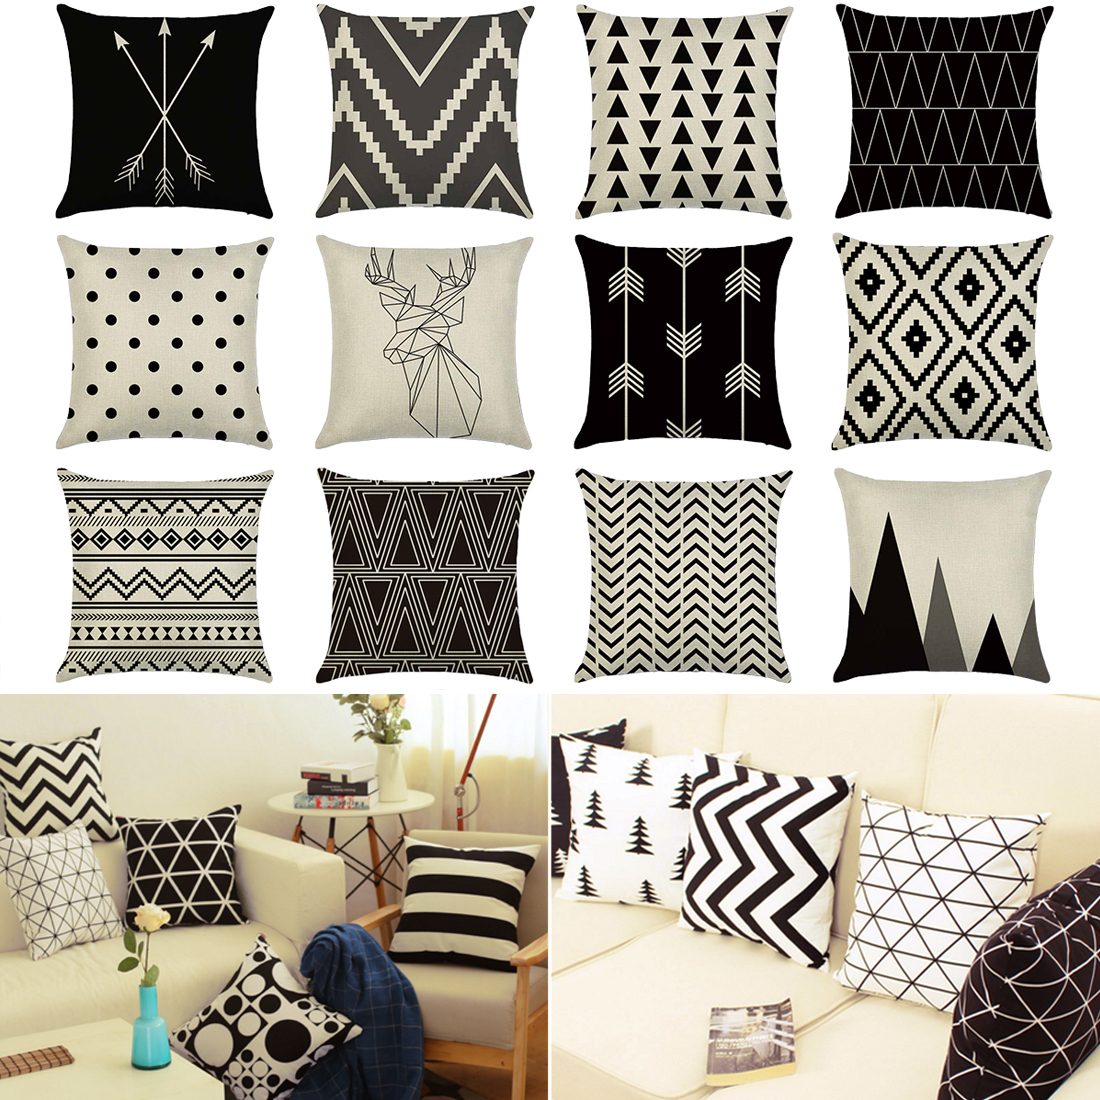 Decorative Throw Pillows Case Black White Geometric Cotton Linen For Home Capa De Almofadas 45x45cm